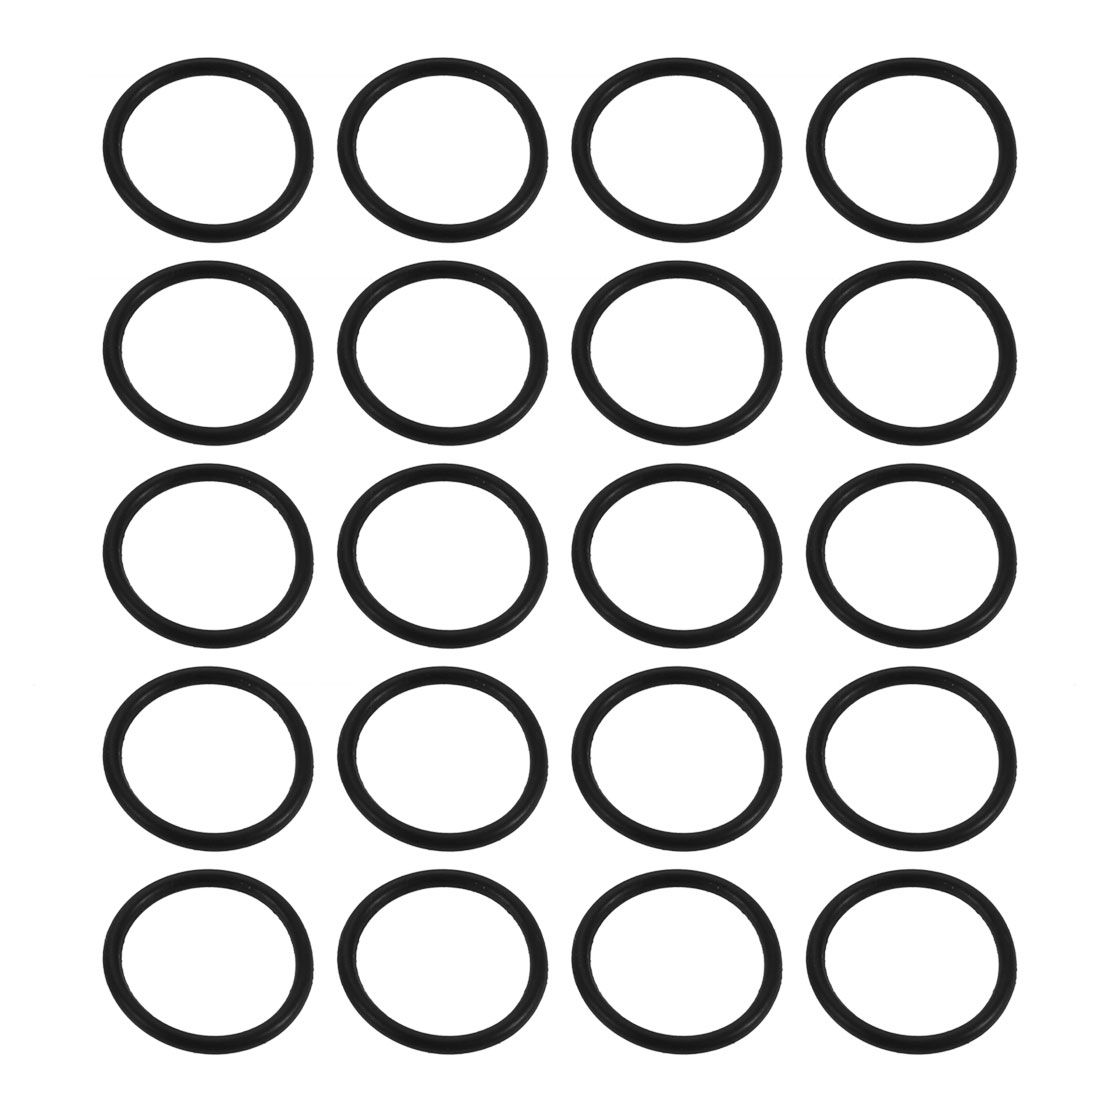 20pcs Black 11mm Outer Dia 1mm Thickness Sealing Ring O-shape Rubber Grommet